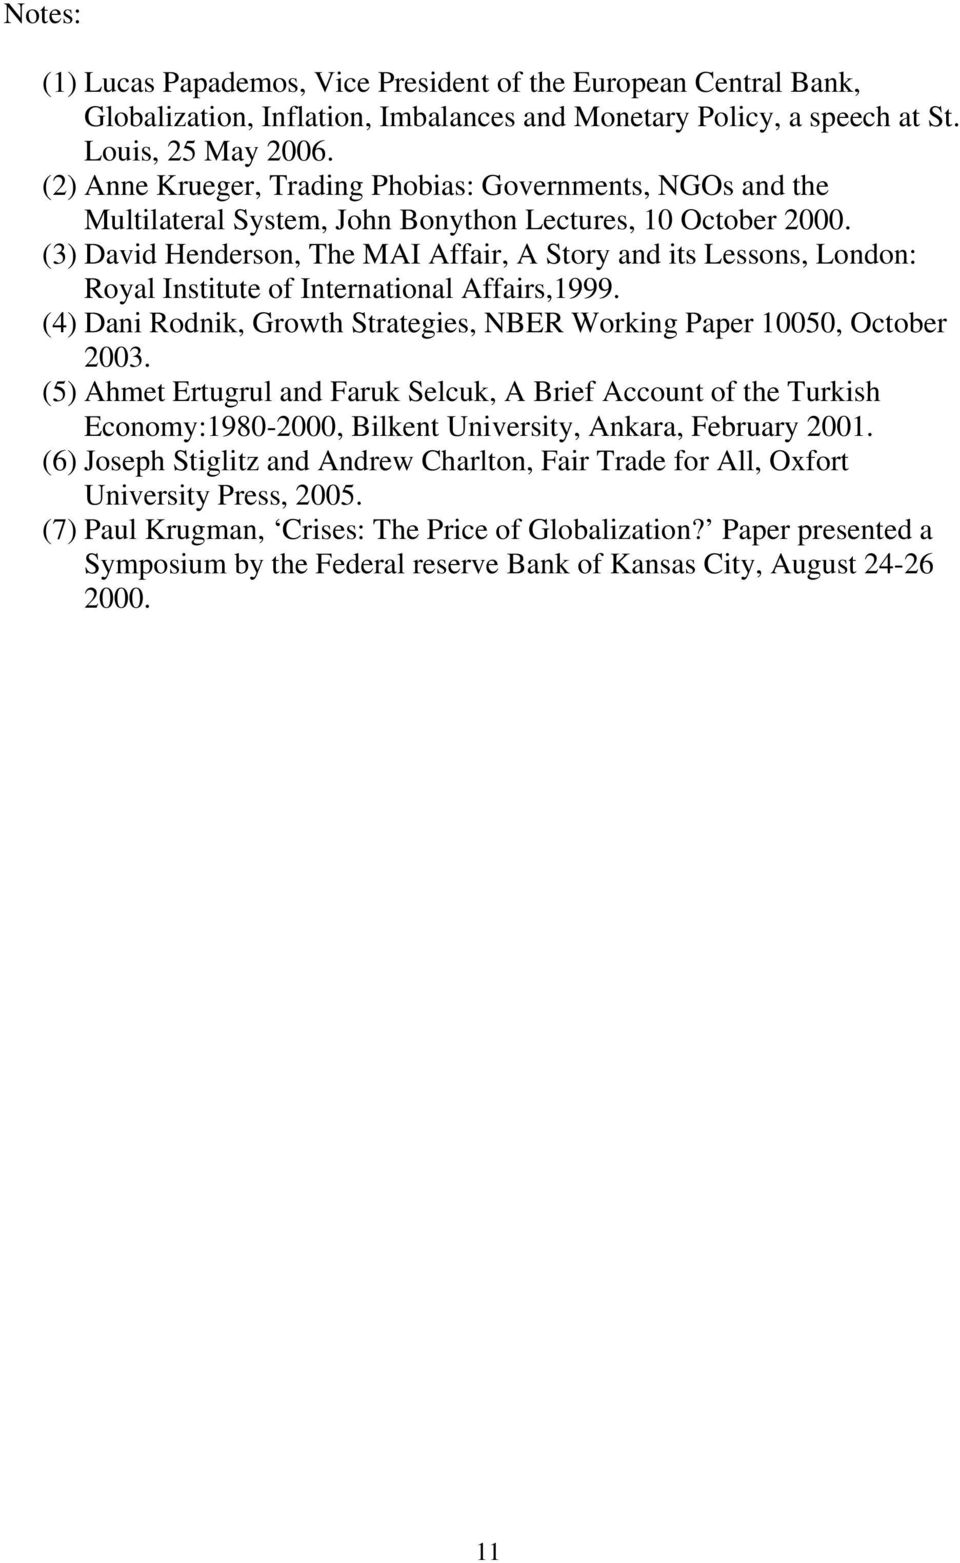 (3) David Henderson, The MAI Affair, A Story and its Lessons, London: Royal Institute of International Affairs,1999. (4) Dani Rodnik, Growth Strategies, NBER Working Paper 050, October 2003.